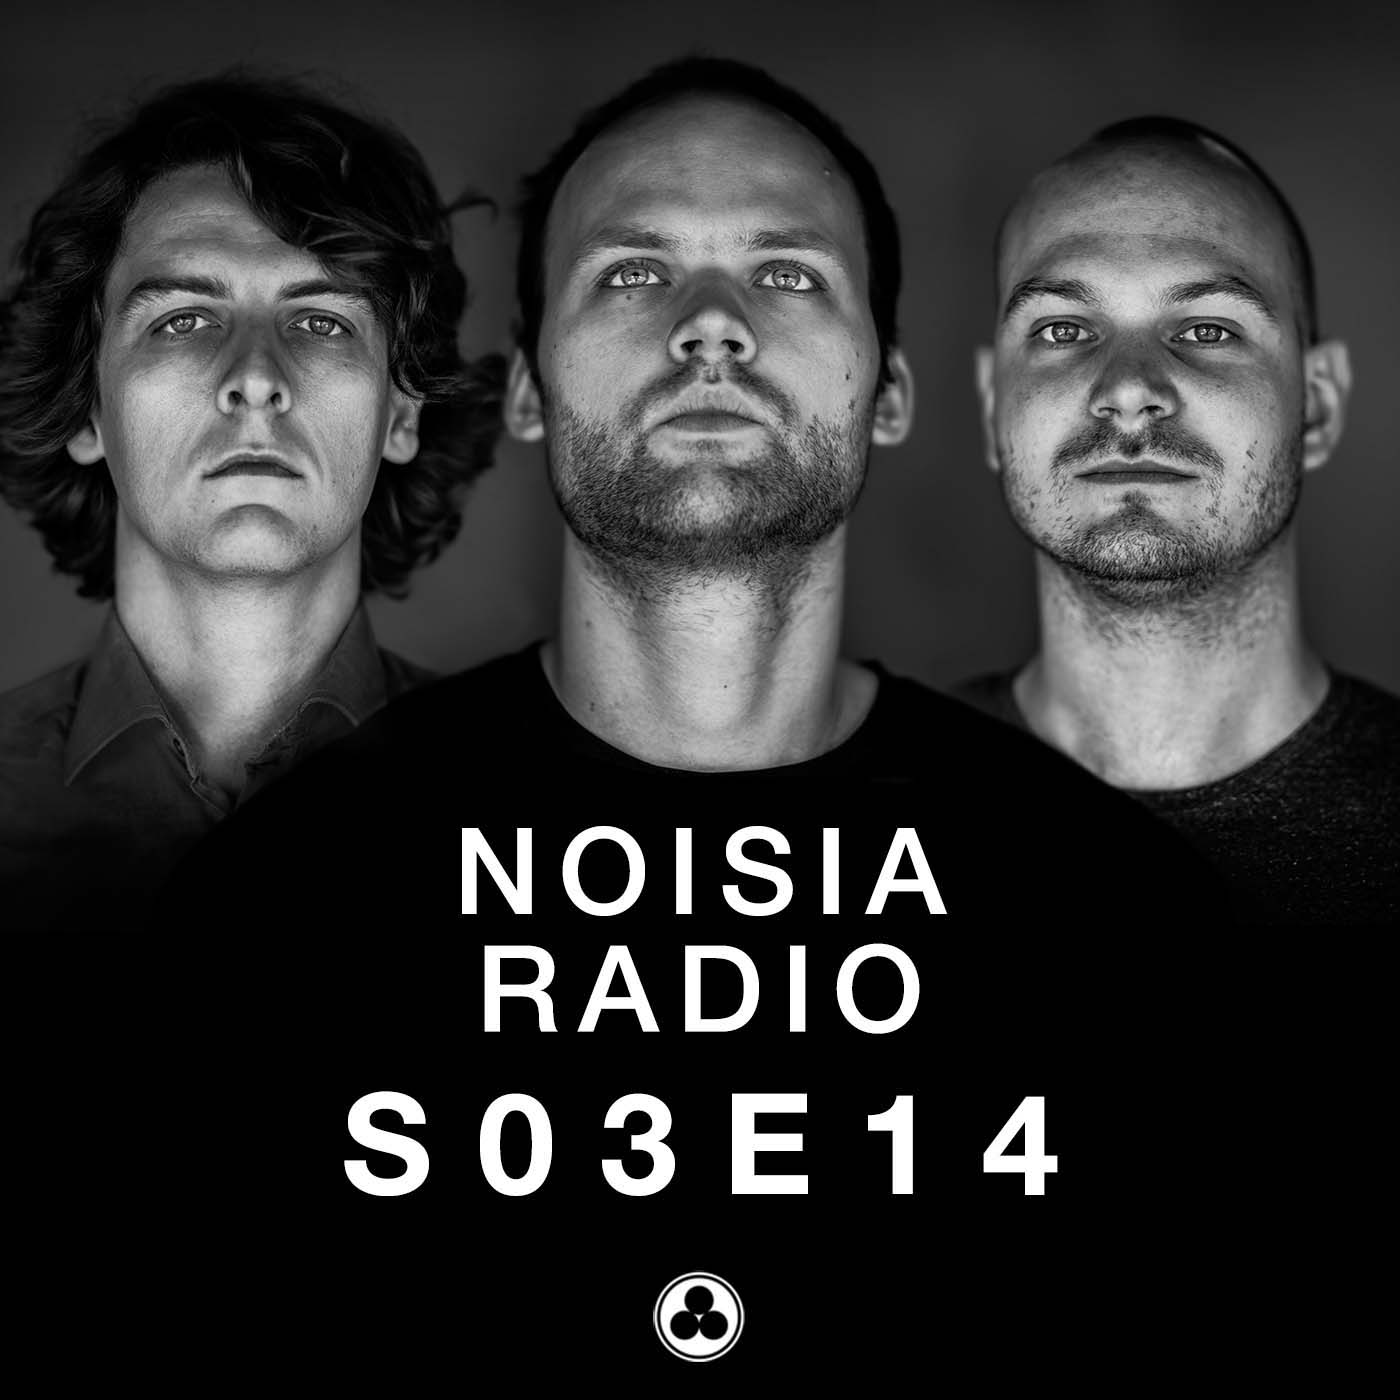 Noisia Radio S03E14